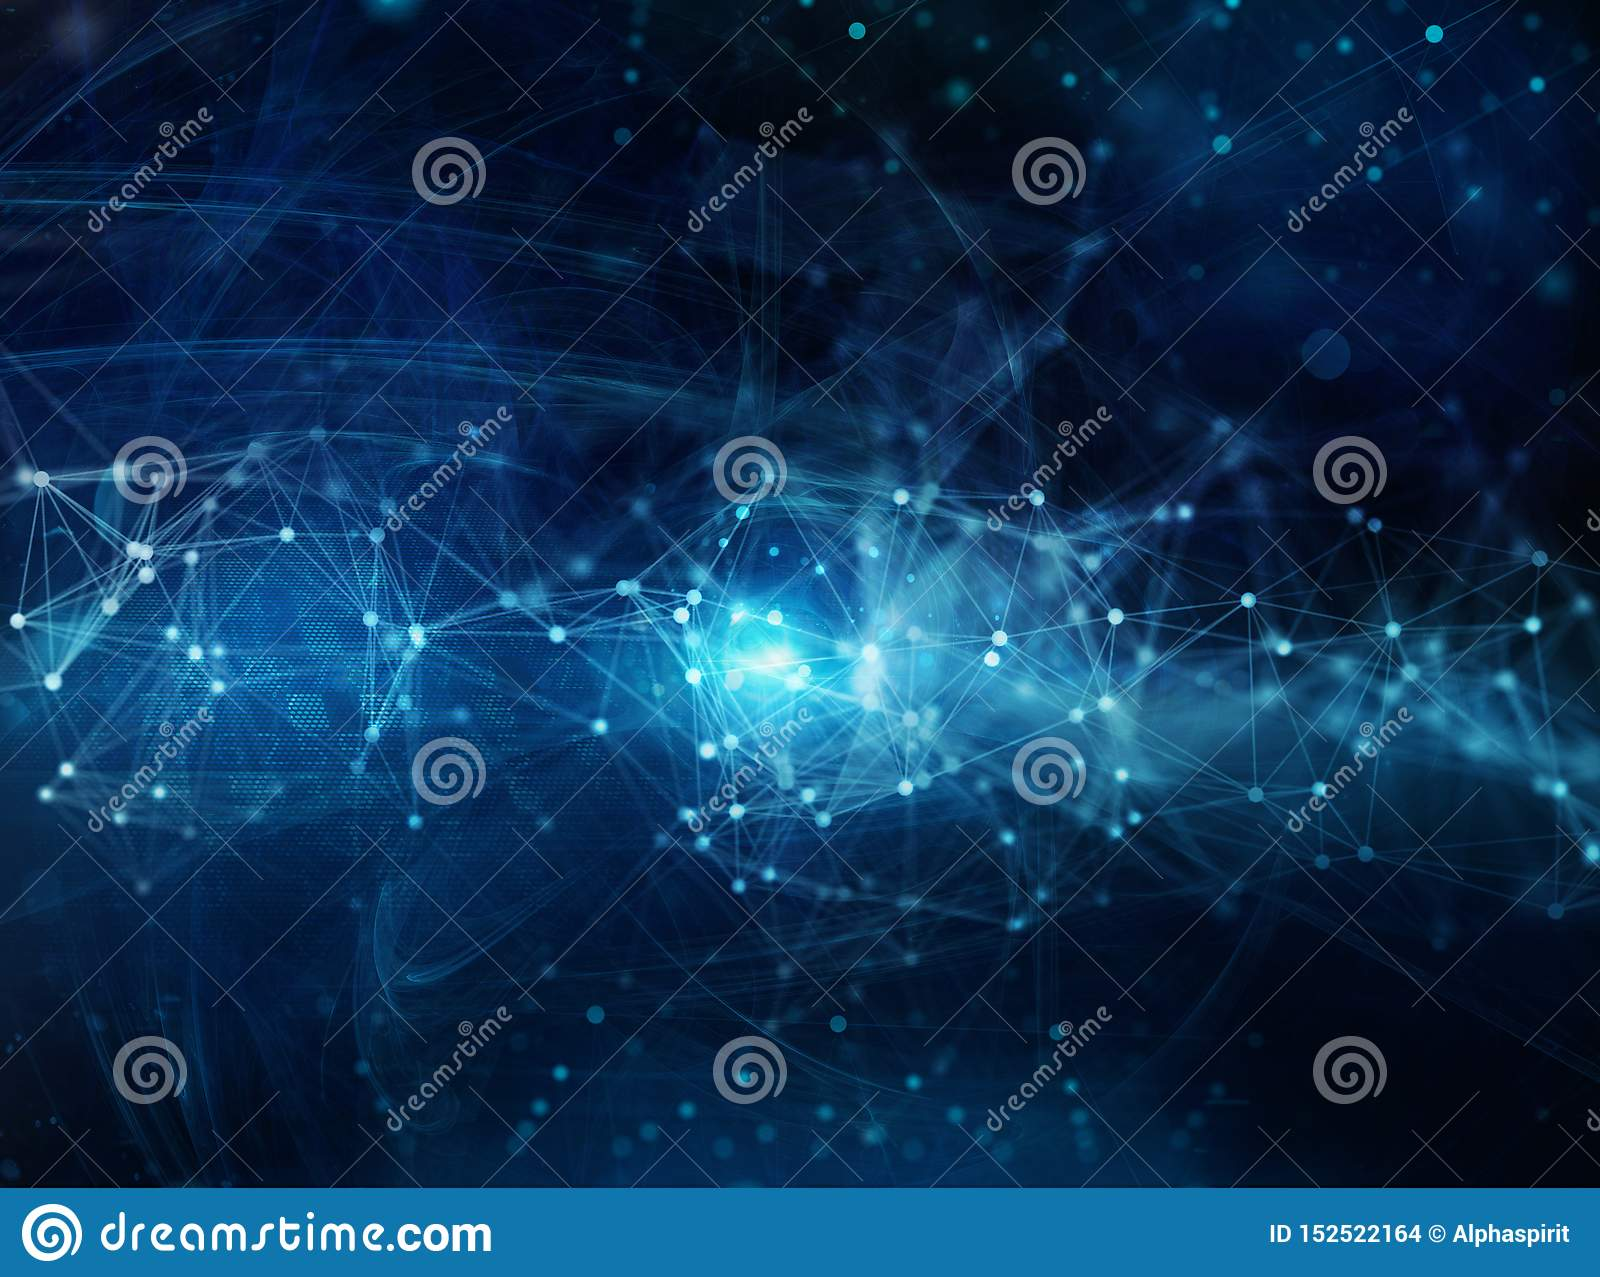 Futuristic abstract internet background with network effects.